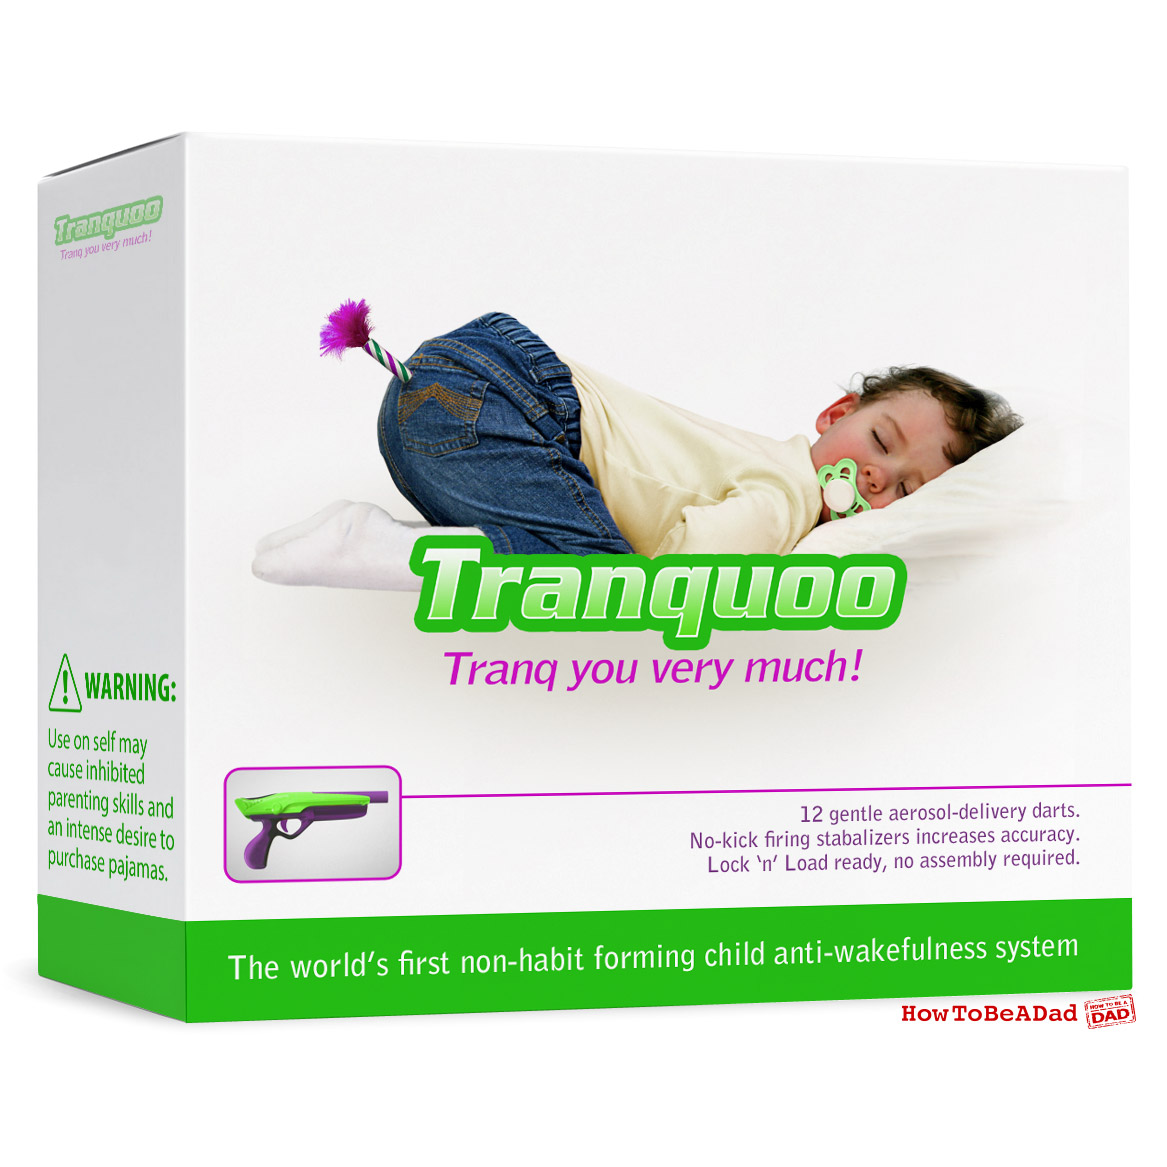 Tranquoo Anti-Wakefulness System funny bad baby product